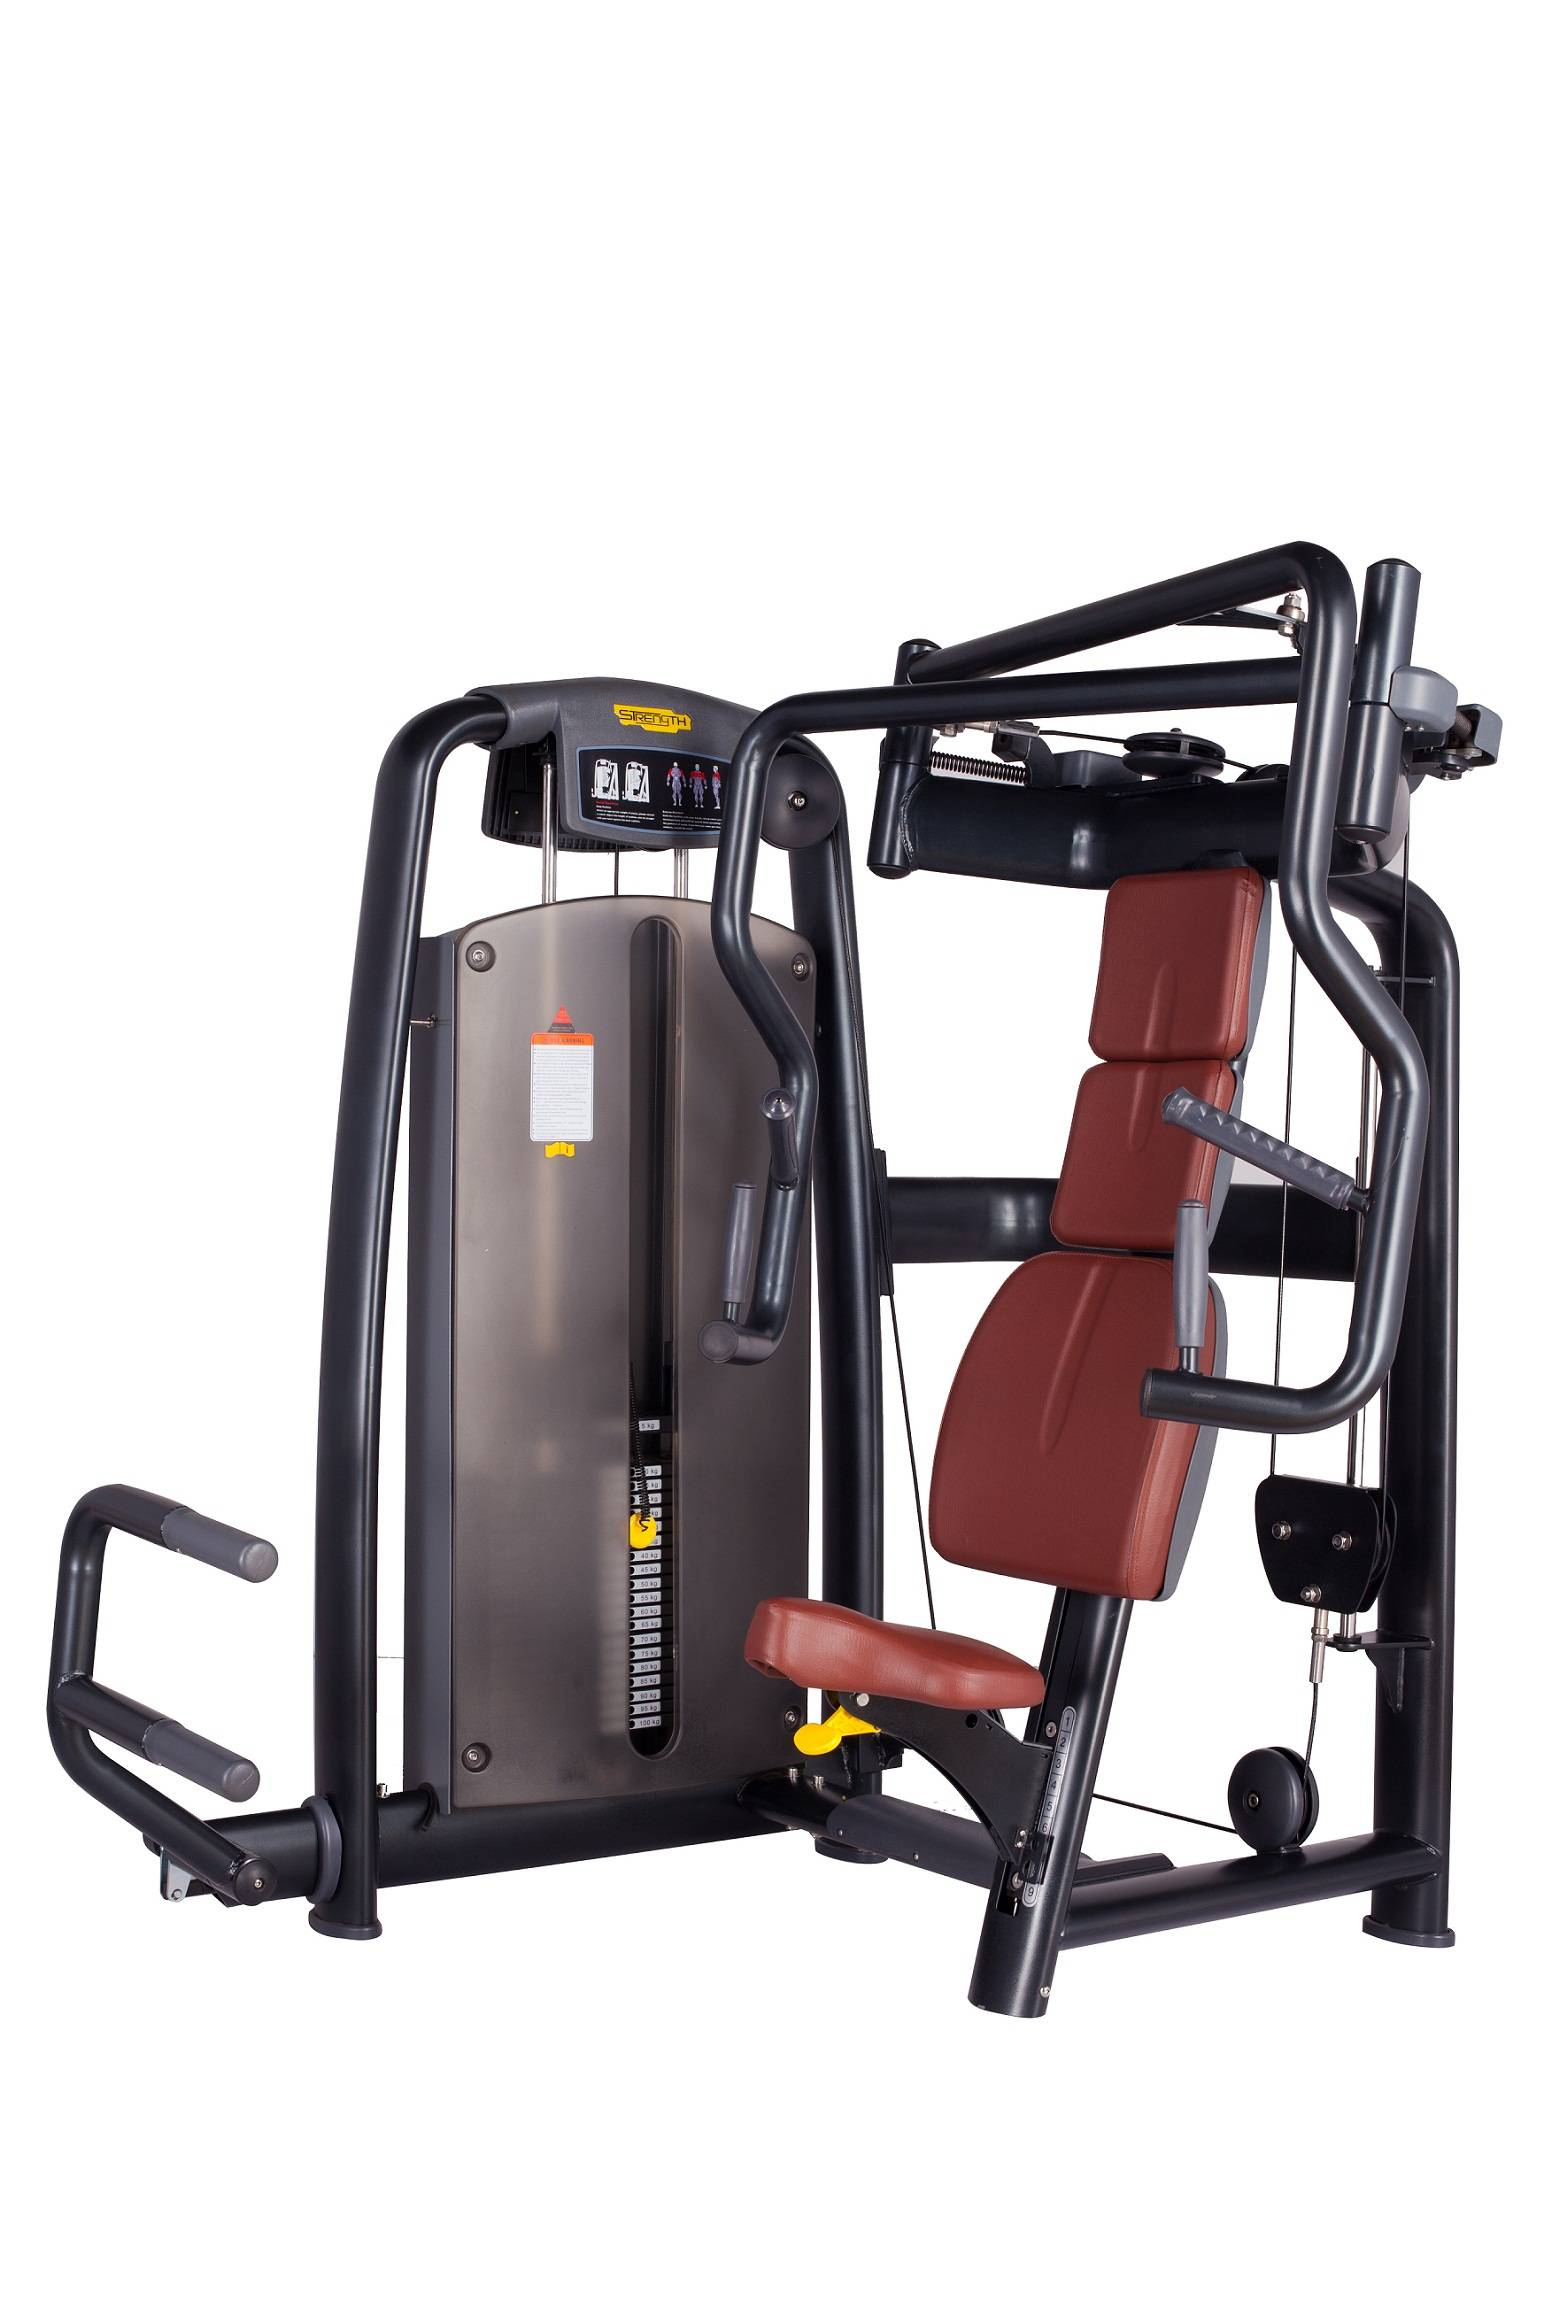 New arrival chest press of MS Fitness